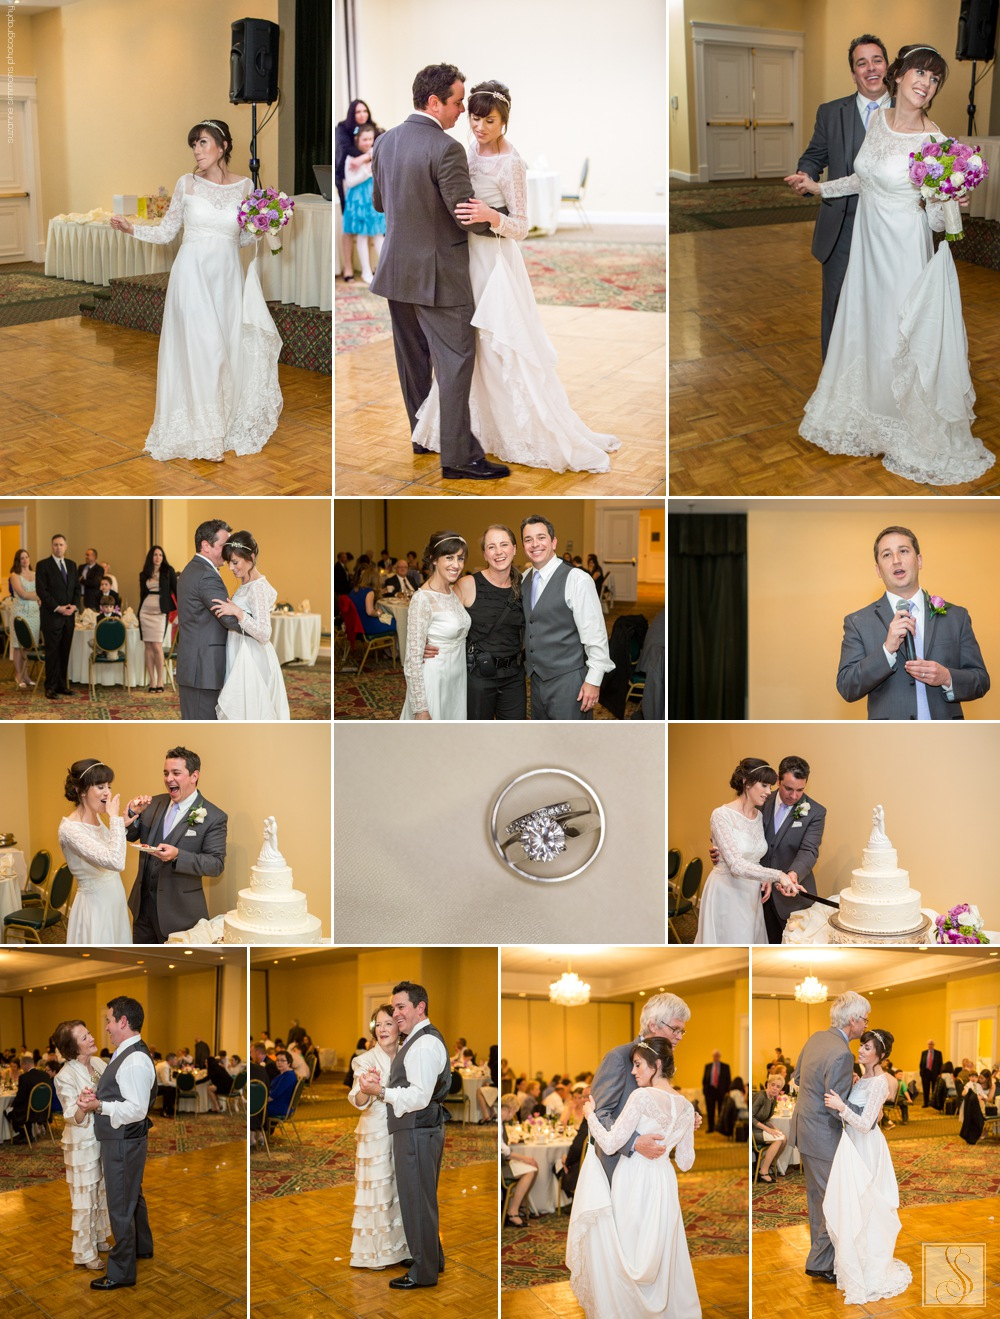 Spring wedding at the Westford Regency Inn